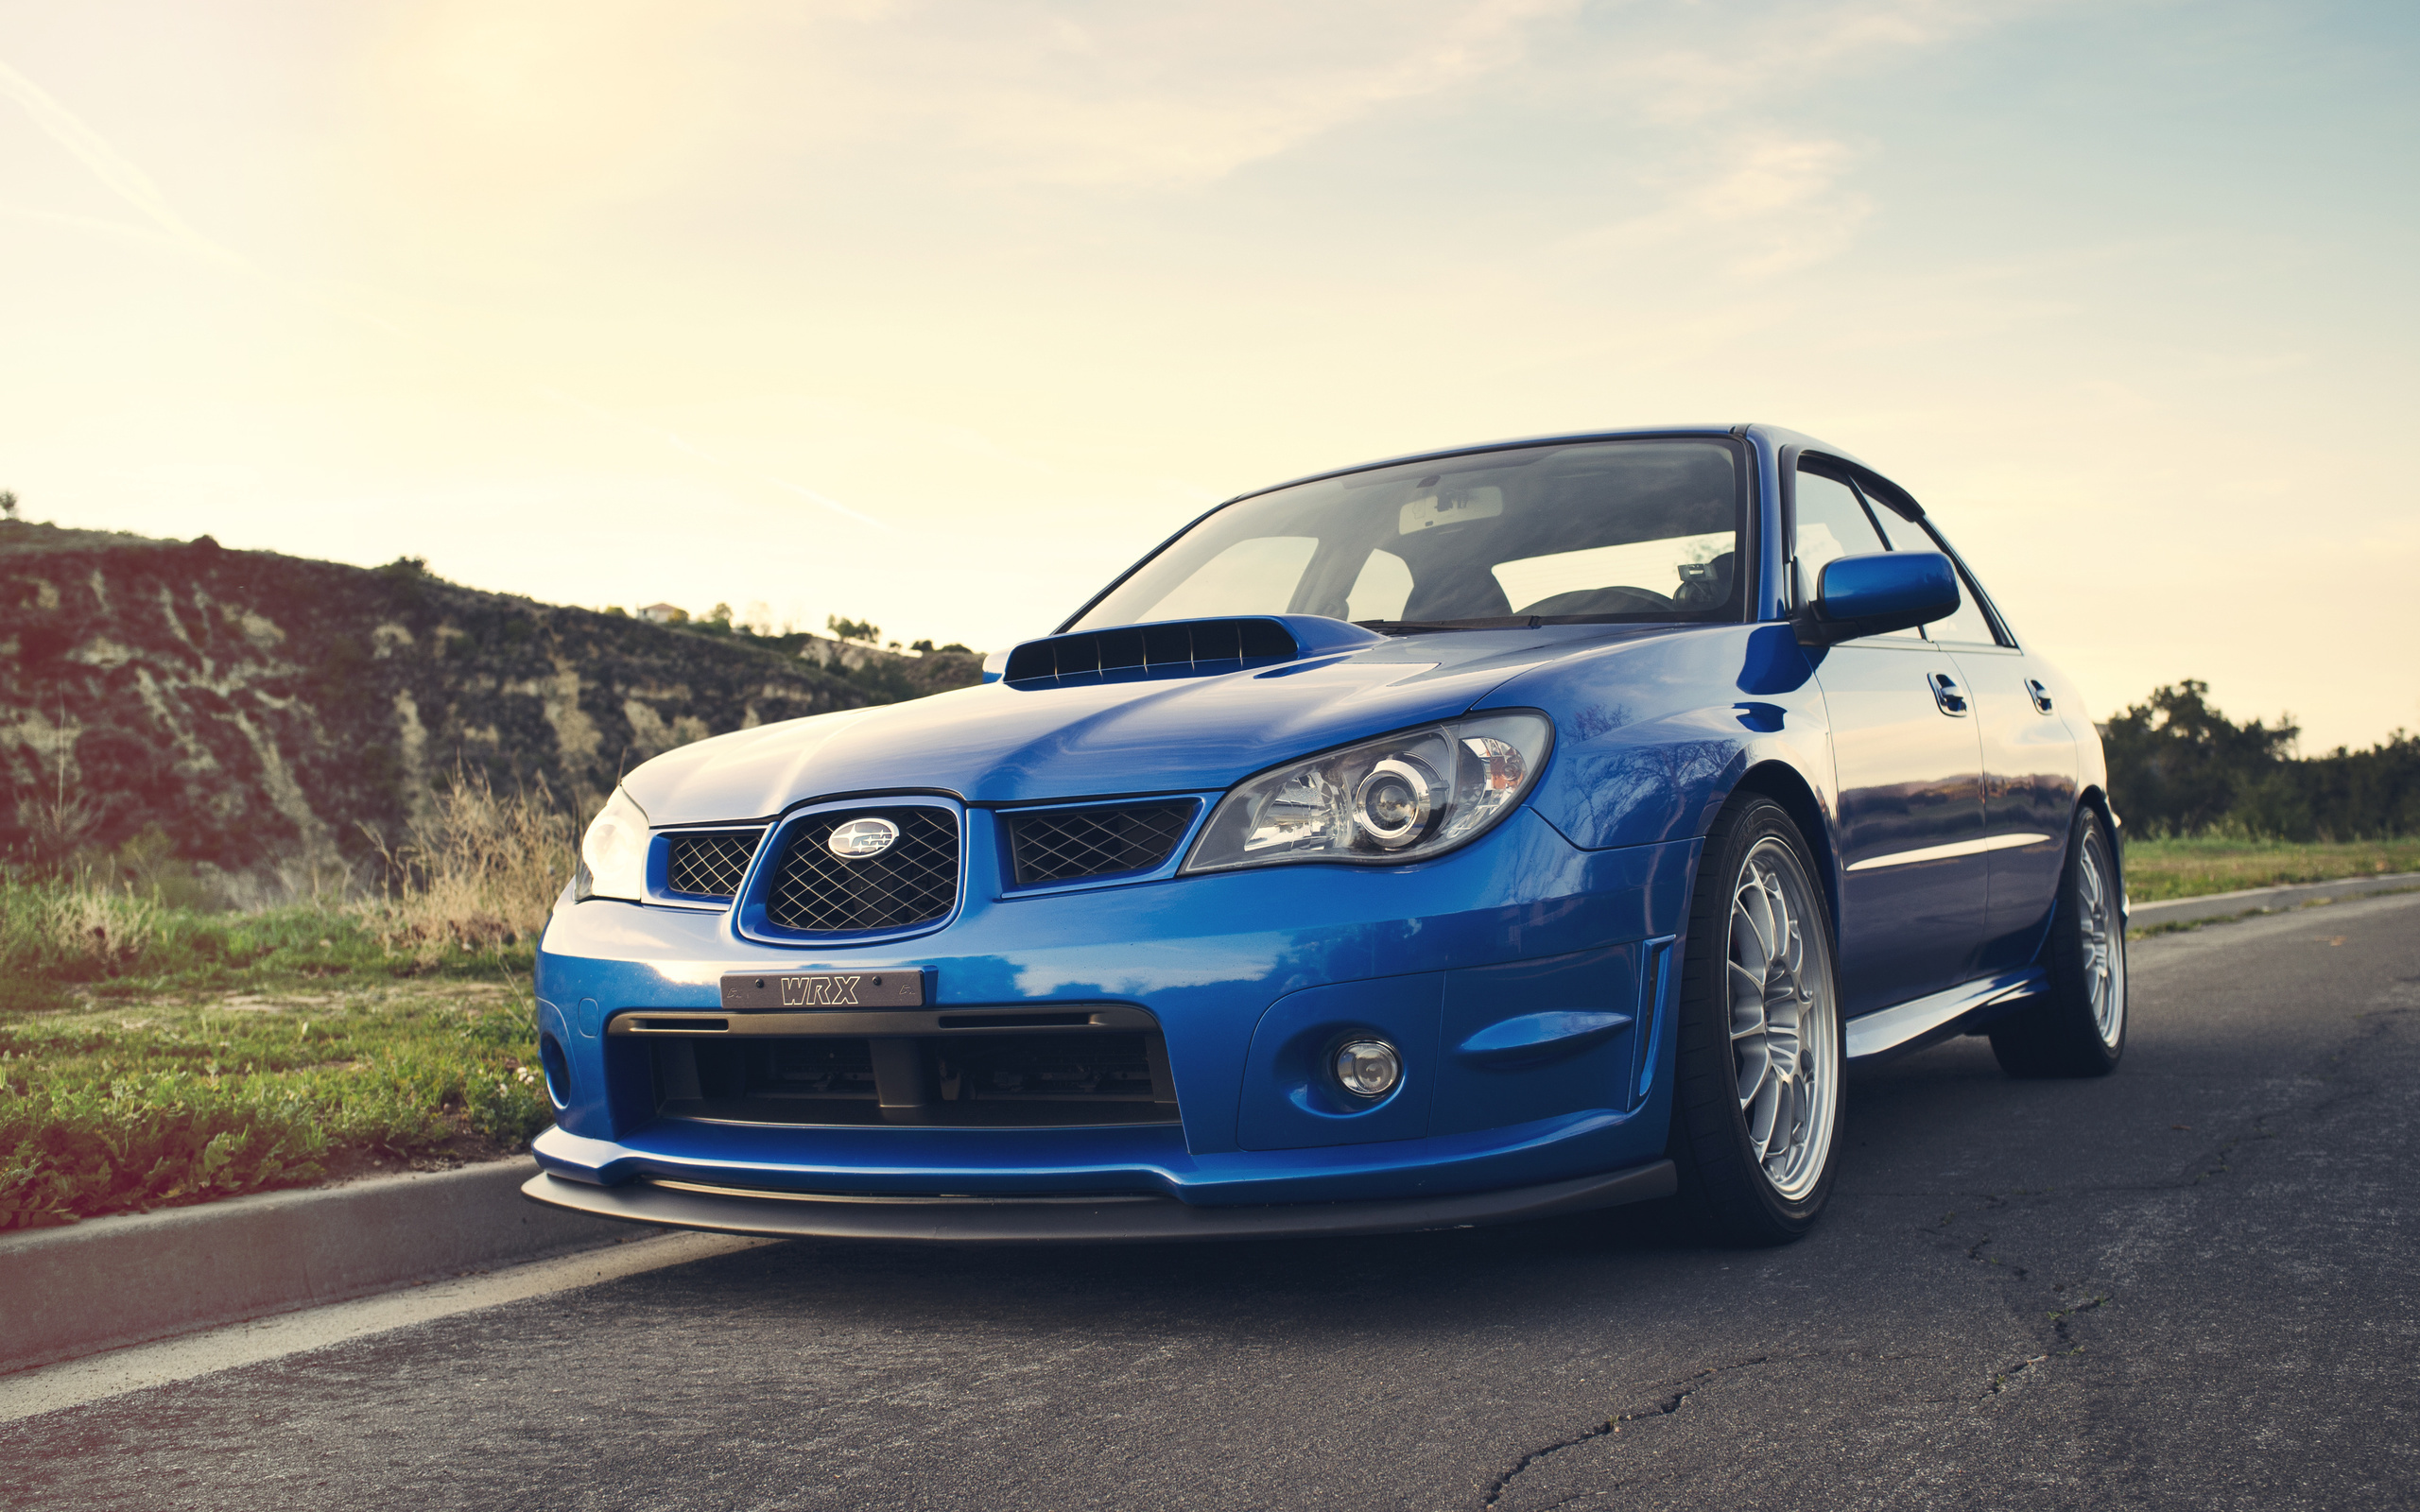 16746 download wallpaper Transport, Auto, Subaru screensavers and pictures for free